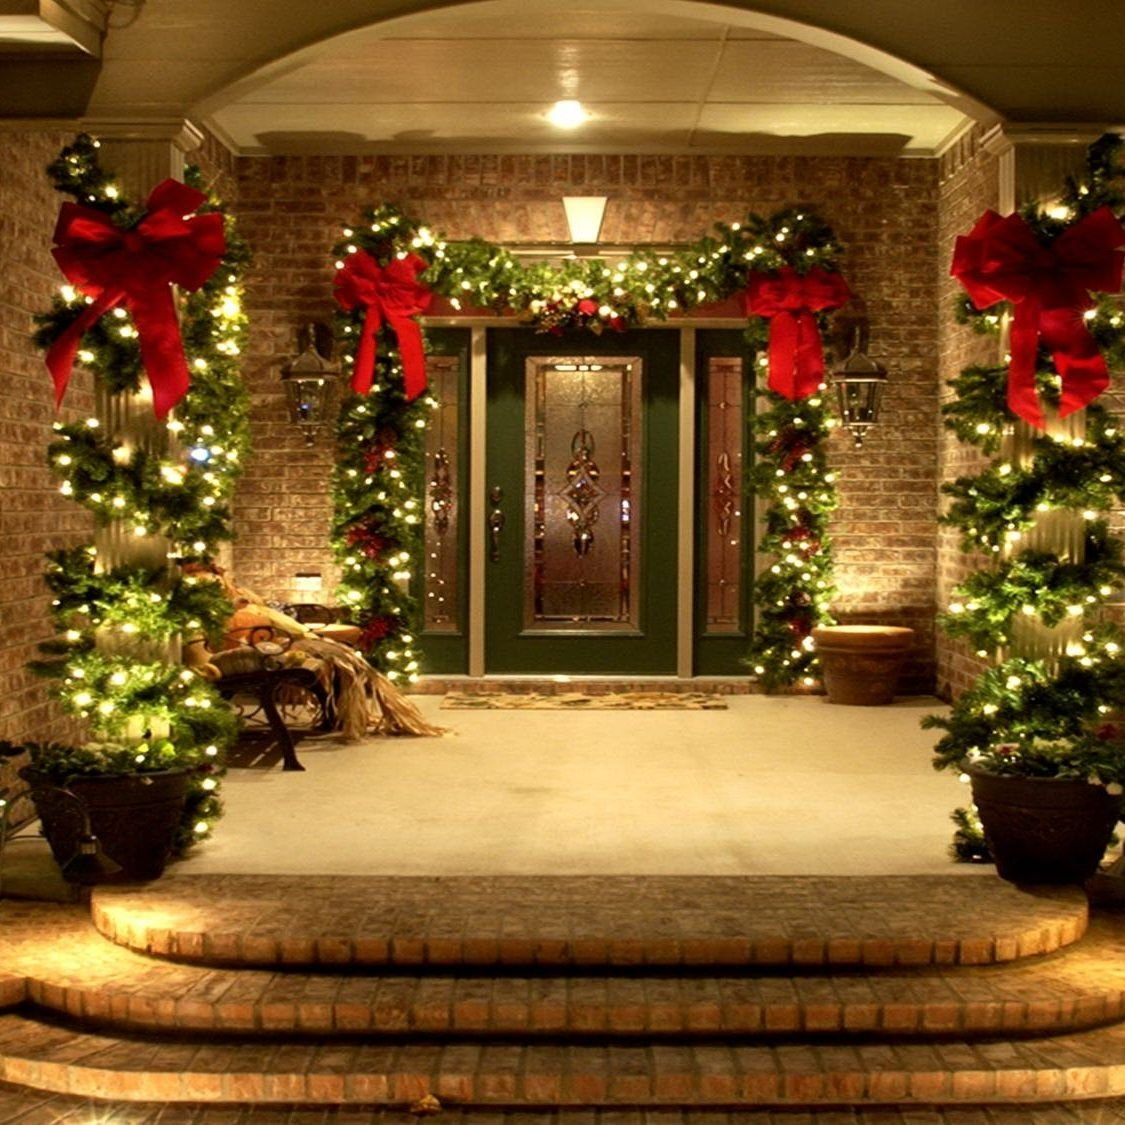 10 Lovable Outdoor Decorating Ideas For Christmas 46 beautiful christmas porch decorating ideas christmas porch